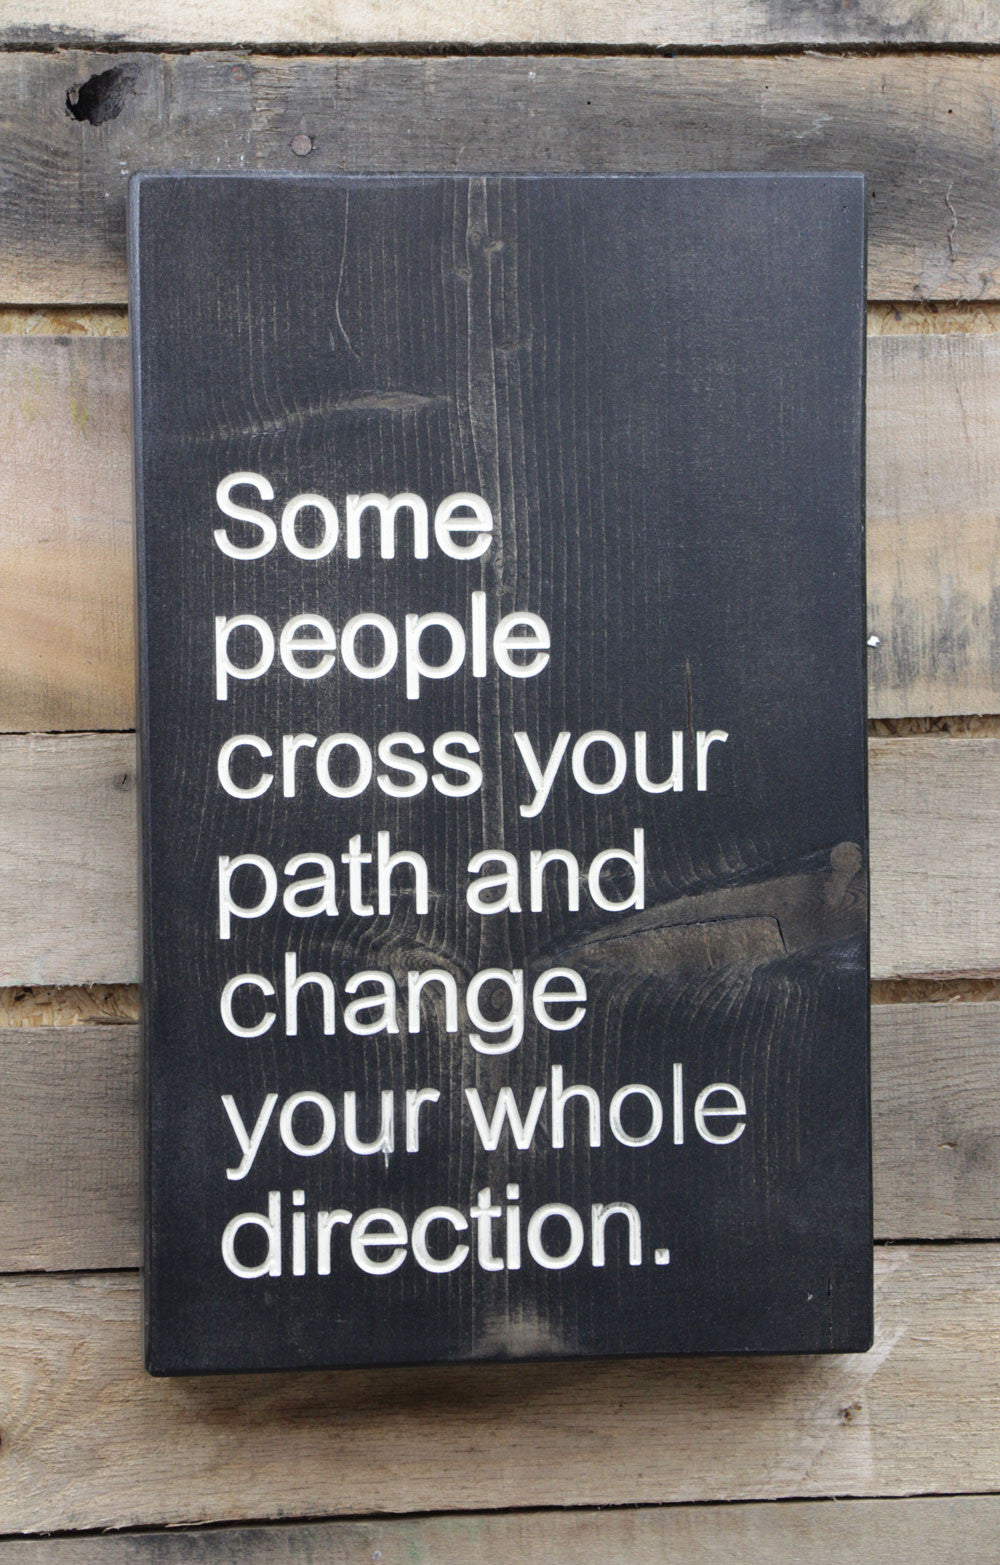 Some people cross your path and can change your direction.